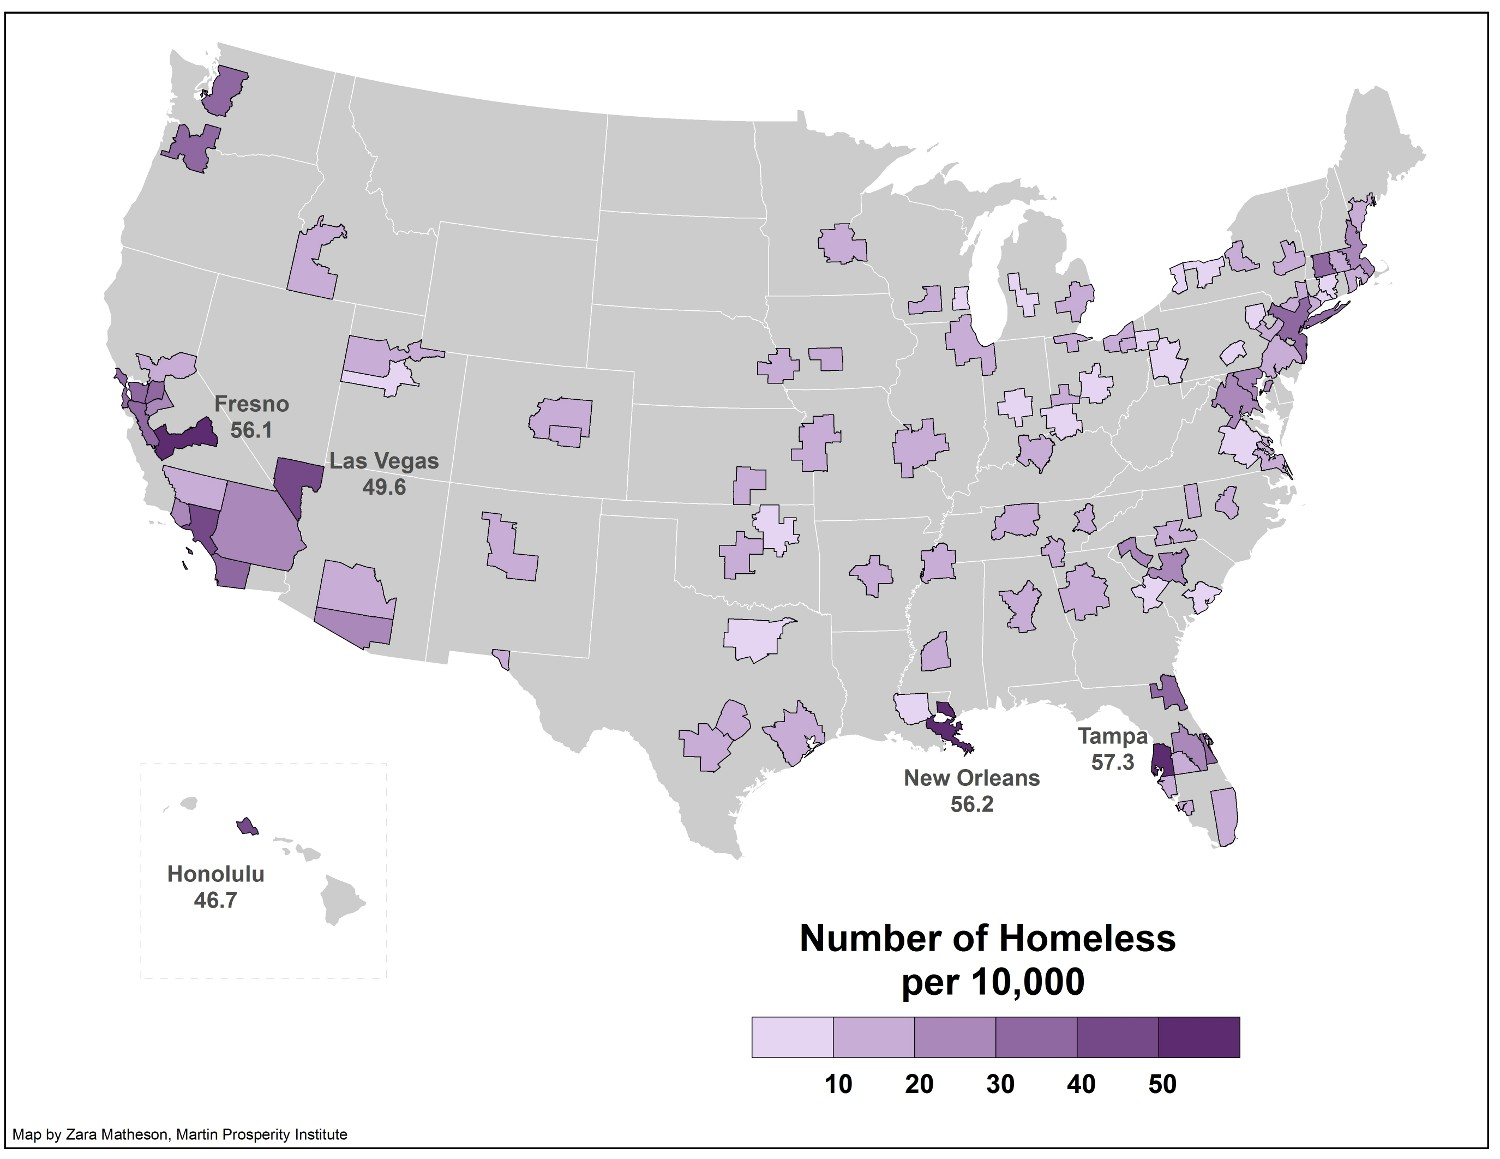 homelessness-map-by-metro